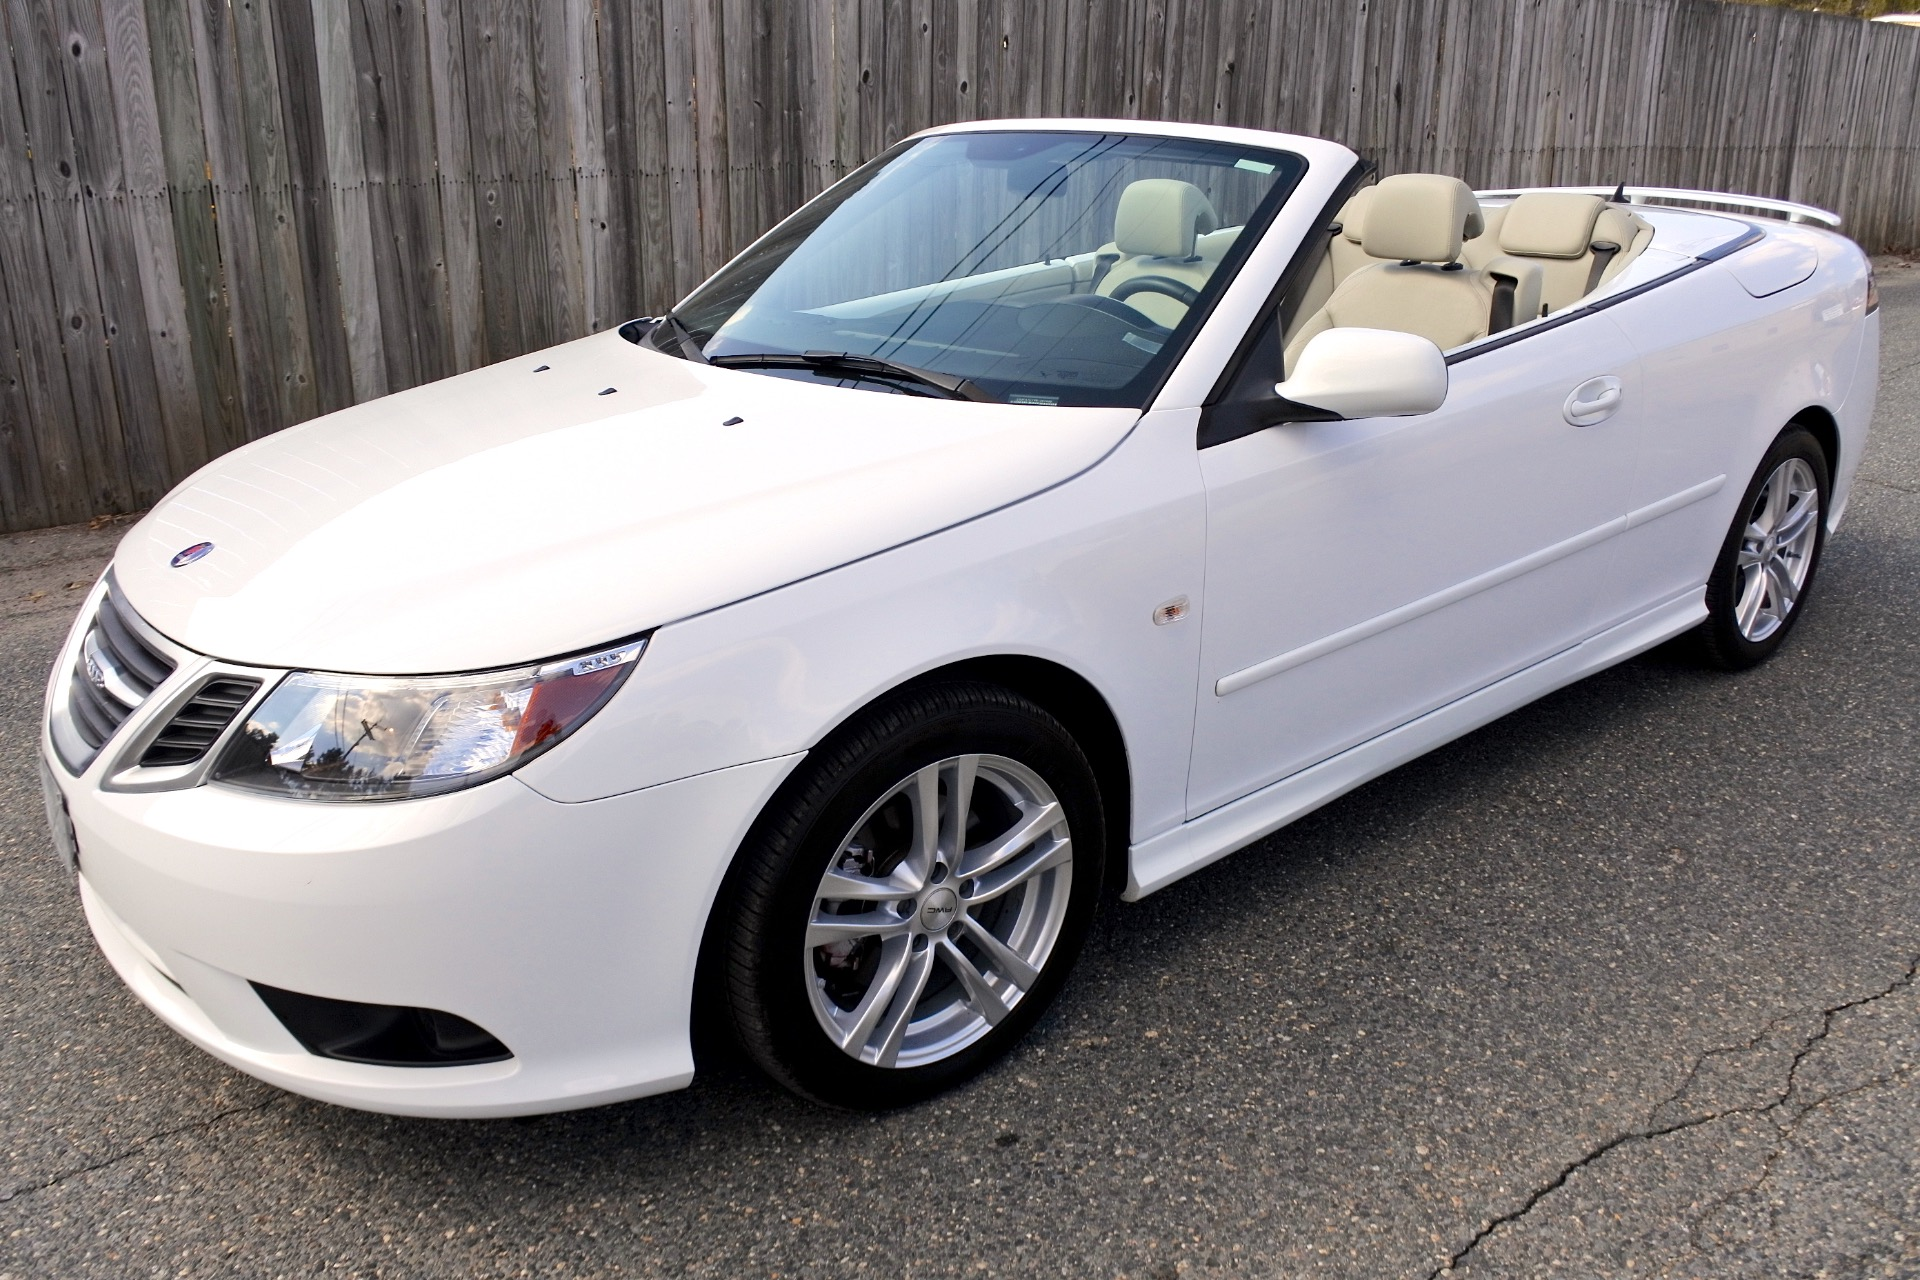 Used 2011 Saab 9-3 2dr Conv Auto FWD Used 2011 Saab 9-3 2dr Conv Auto FWD for sale  at Metro West Motorcars LLC in Shrewsbury MA 1